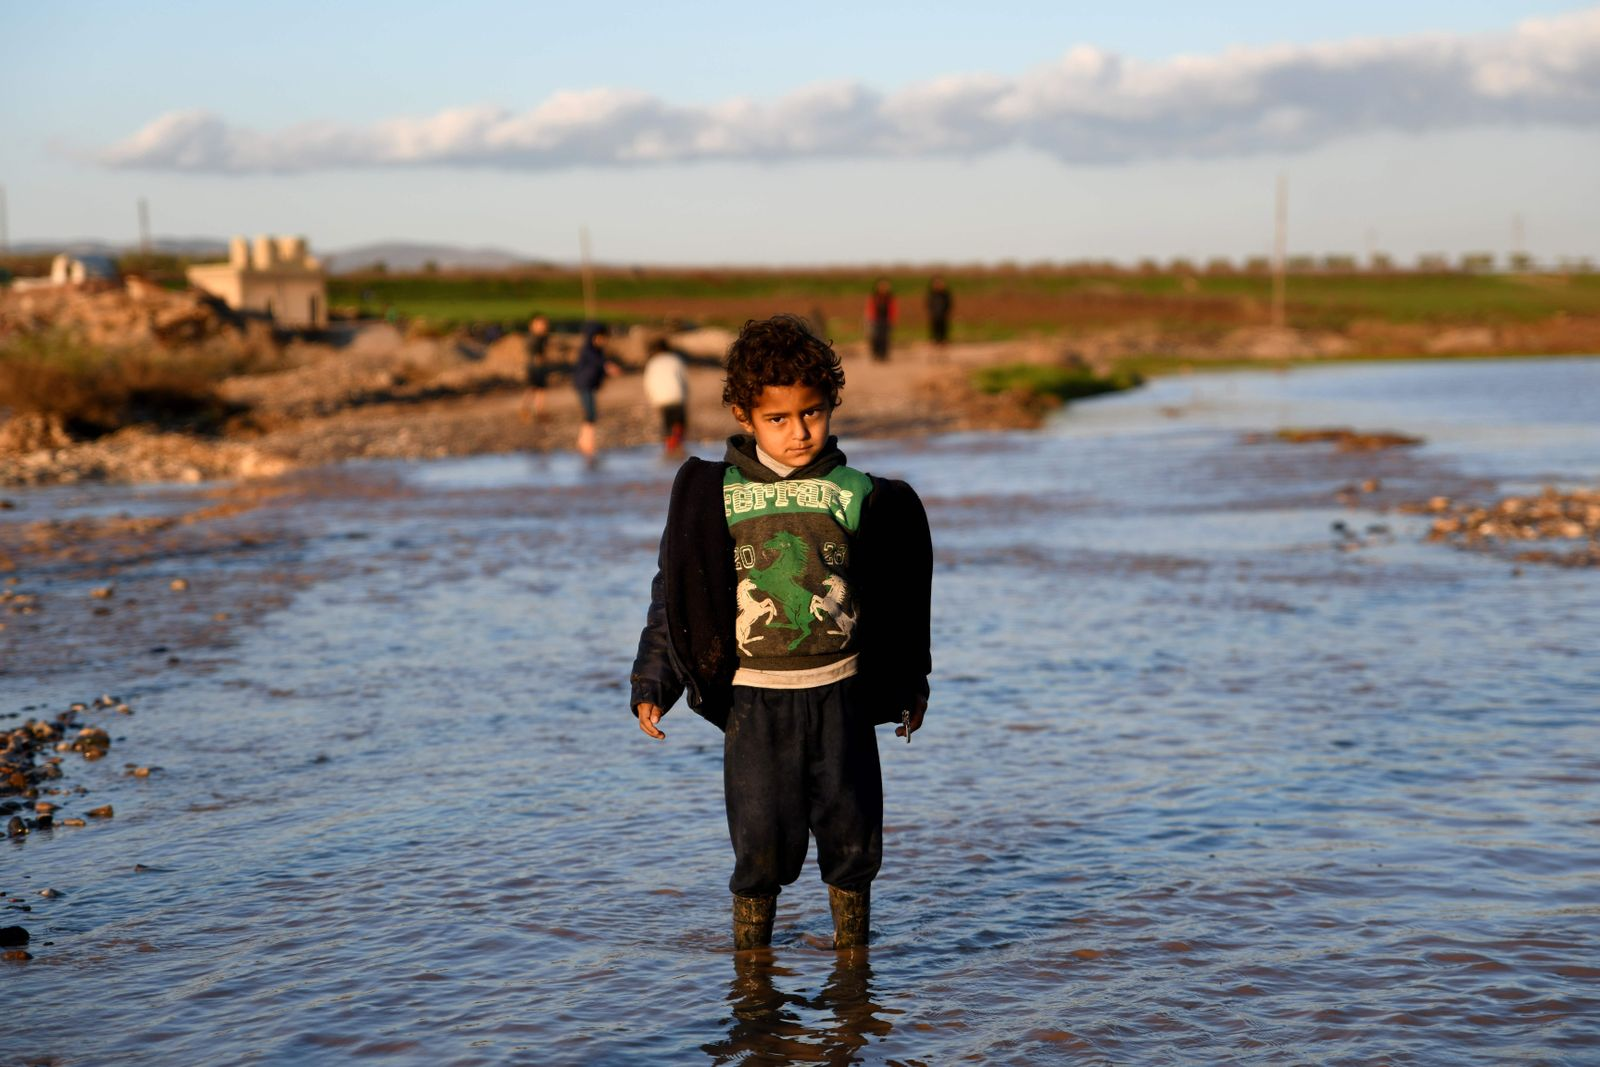 Syria-conflict-SYRIA-CONFLICT-WEATHER-DISPLACED